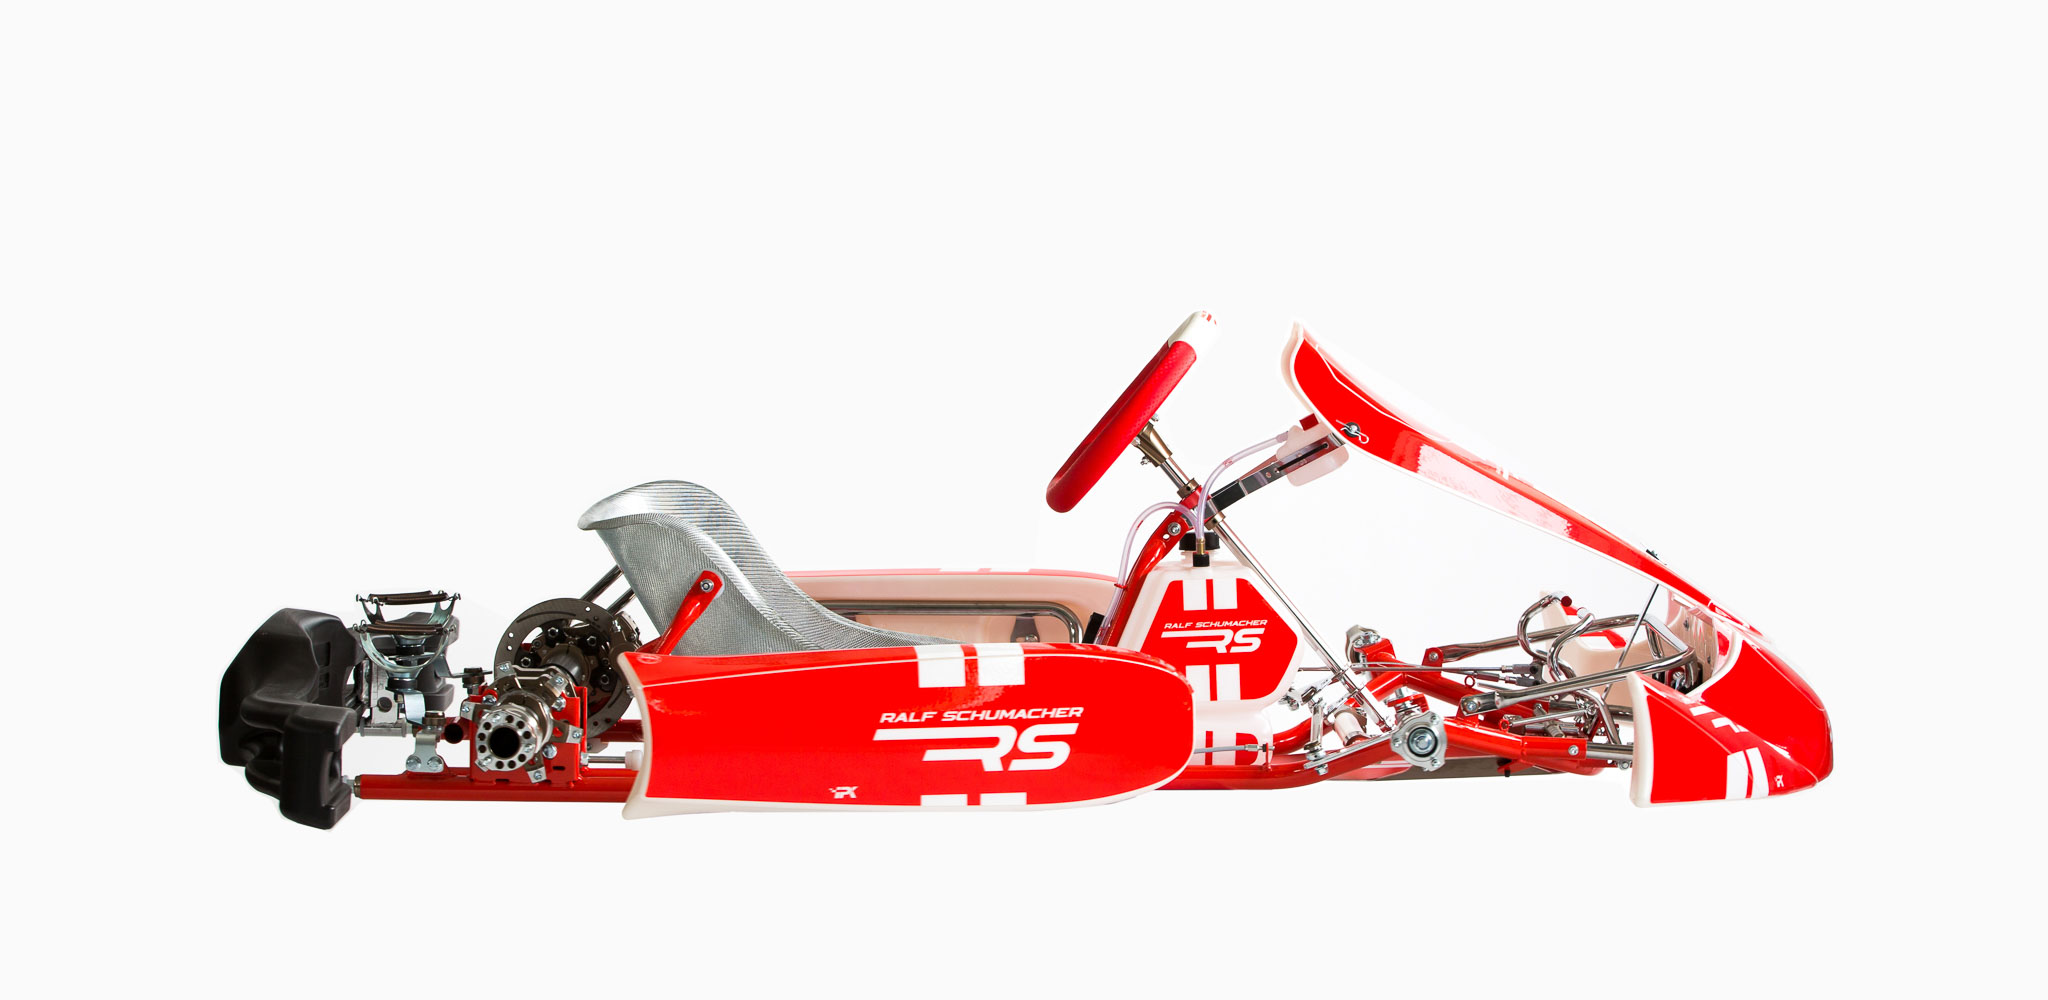 RS Kart: analysis of the 2019 go-kart signed by Ralf